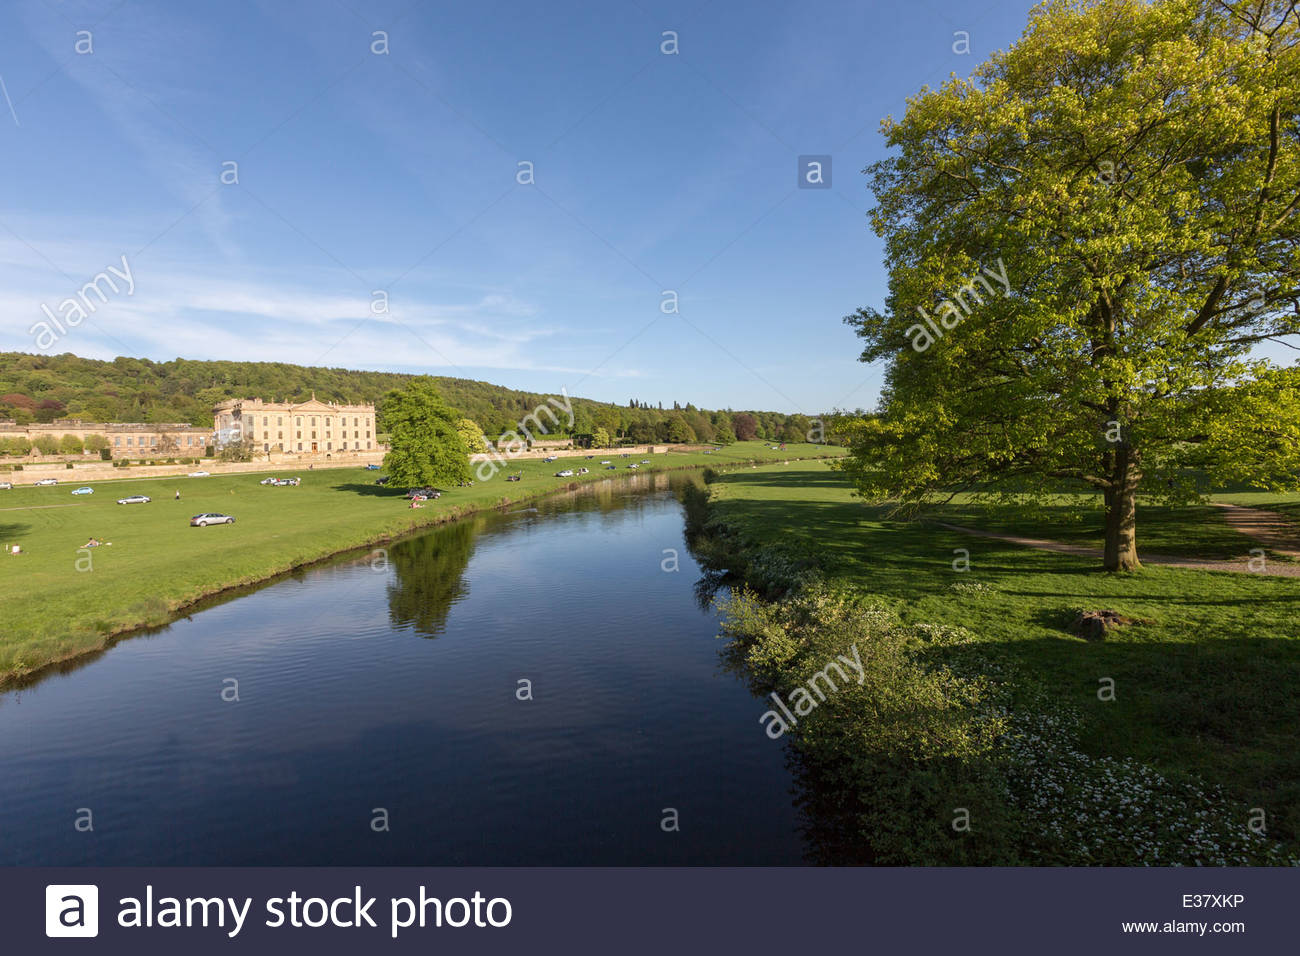 The River Derwent and House at Chatsworth - Stock Image